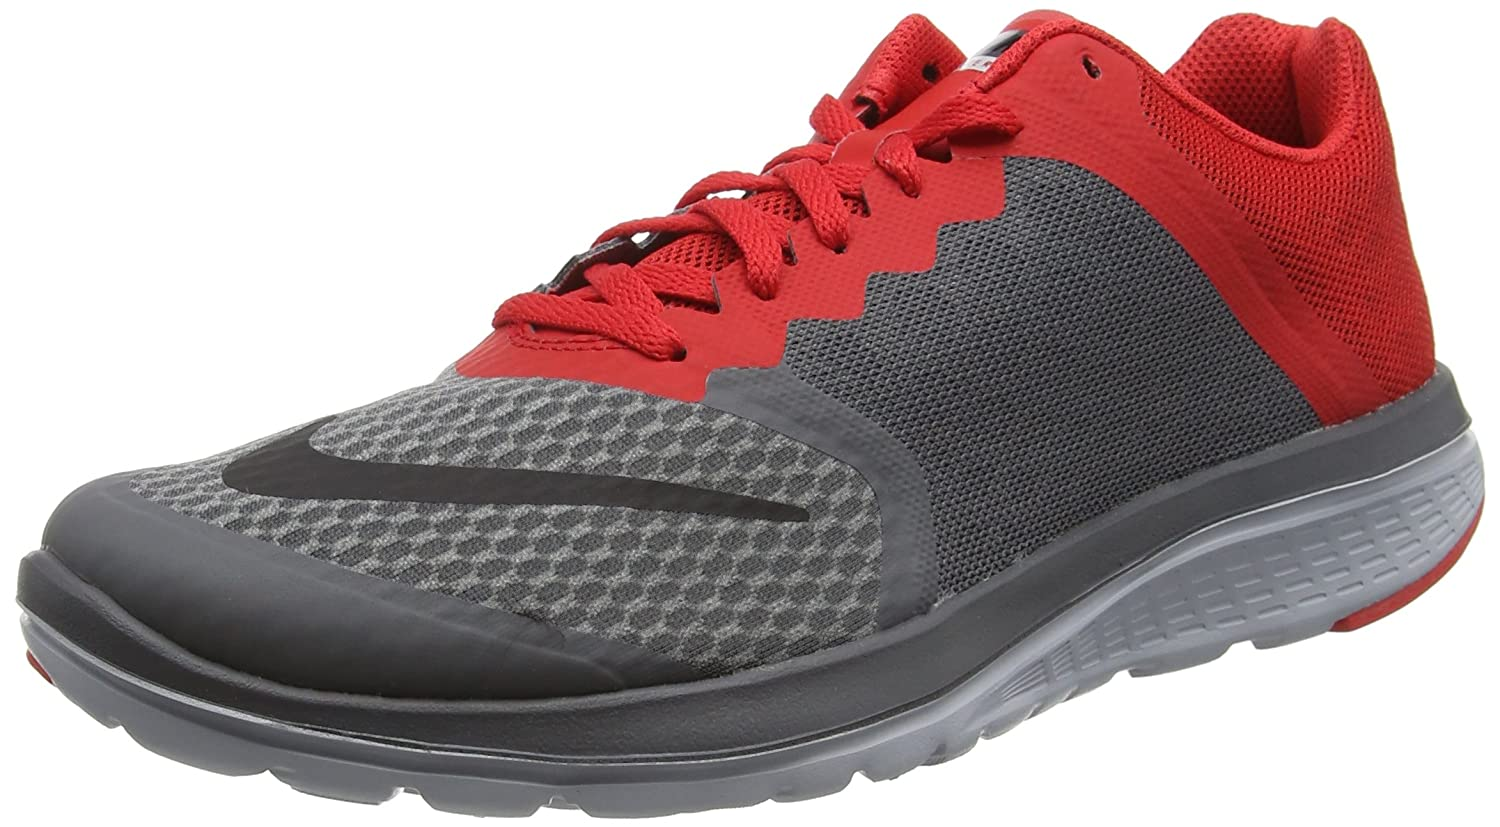 NIKE Men's Fs Lite 2 Running Shoe B0147VVCC2 13 D(M) US|Dark Grey/University Red/Wolf Grey/Black